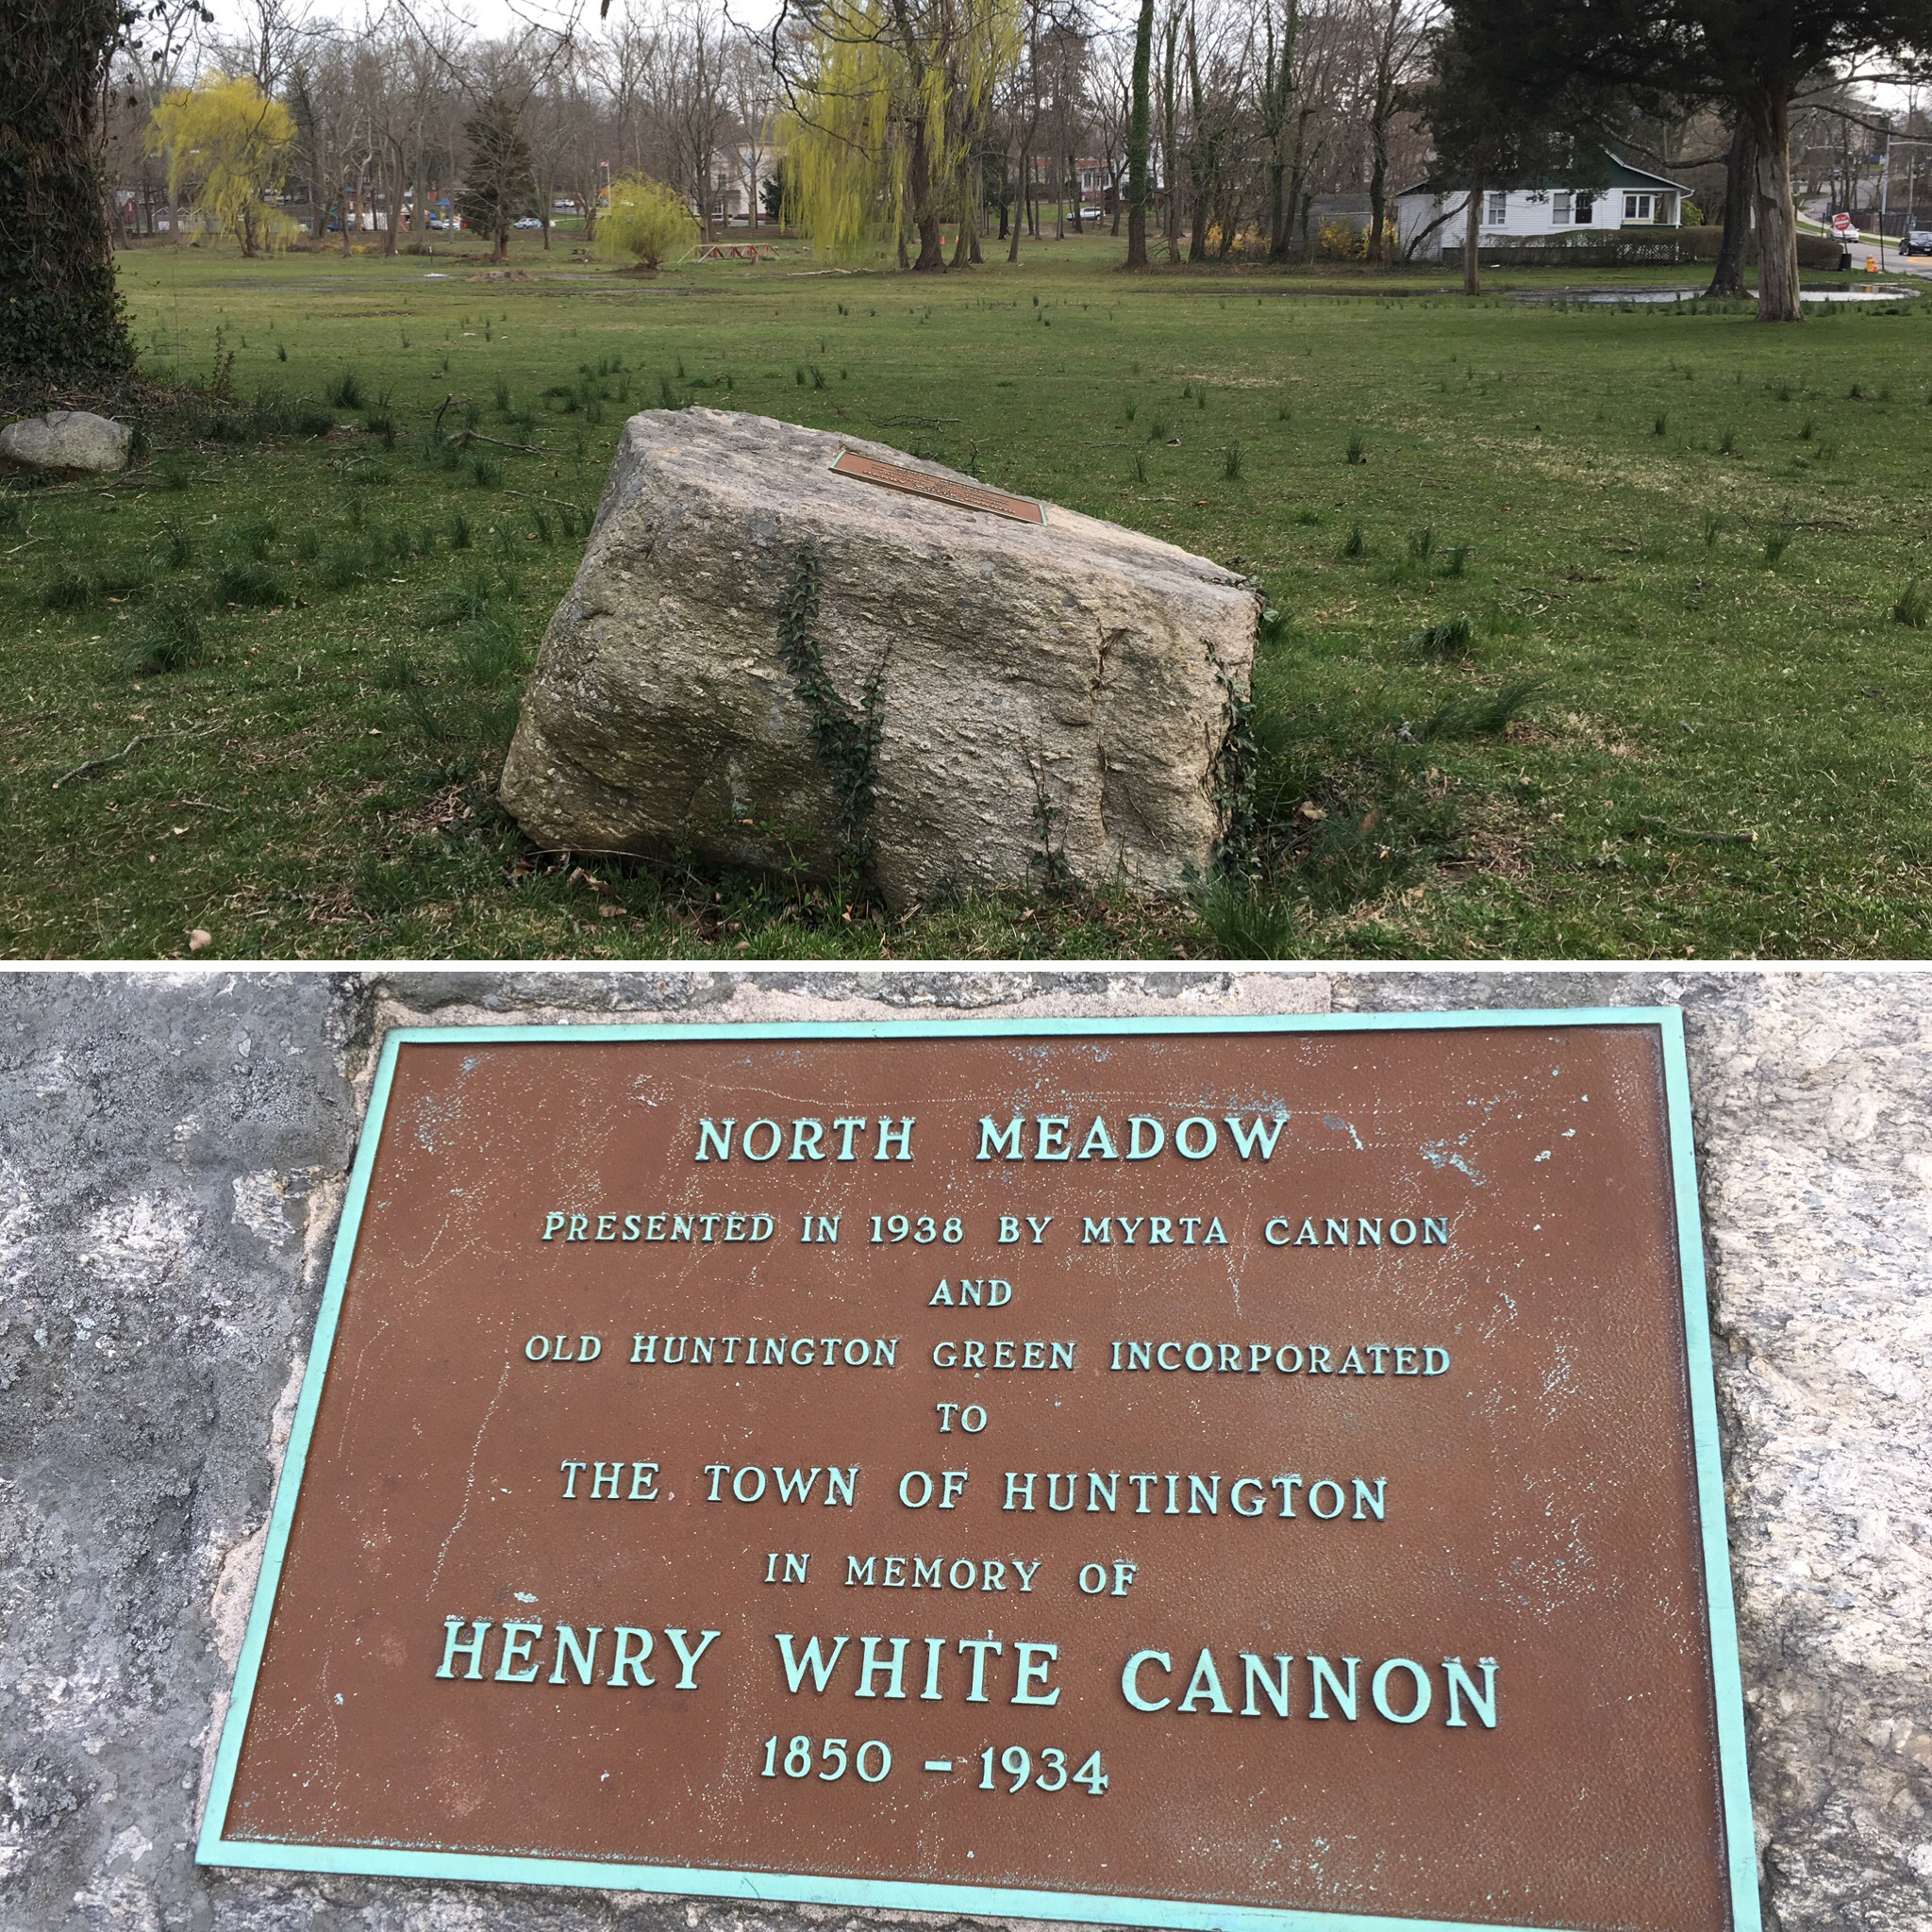 On the North Meadow adjacent to the Village Green is a memorial to the man who helped expand the open space in the heart of the Town Spot.